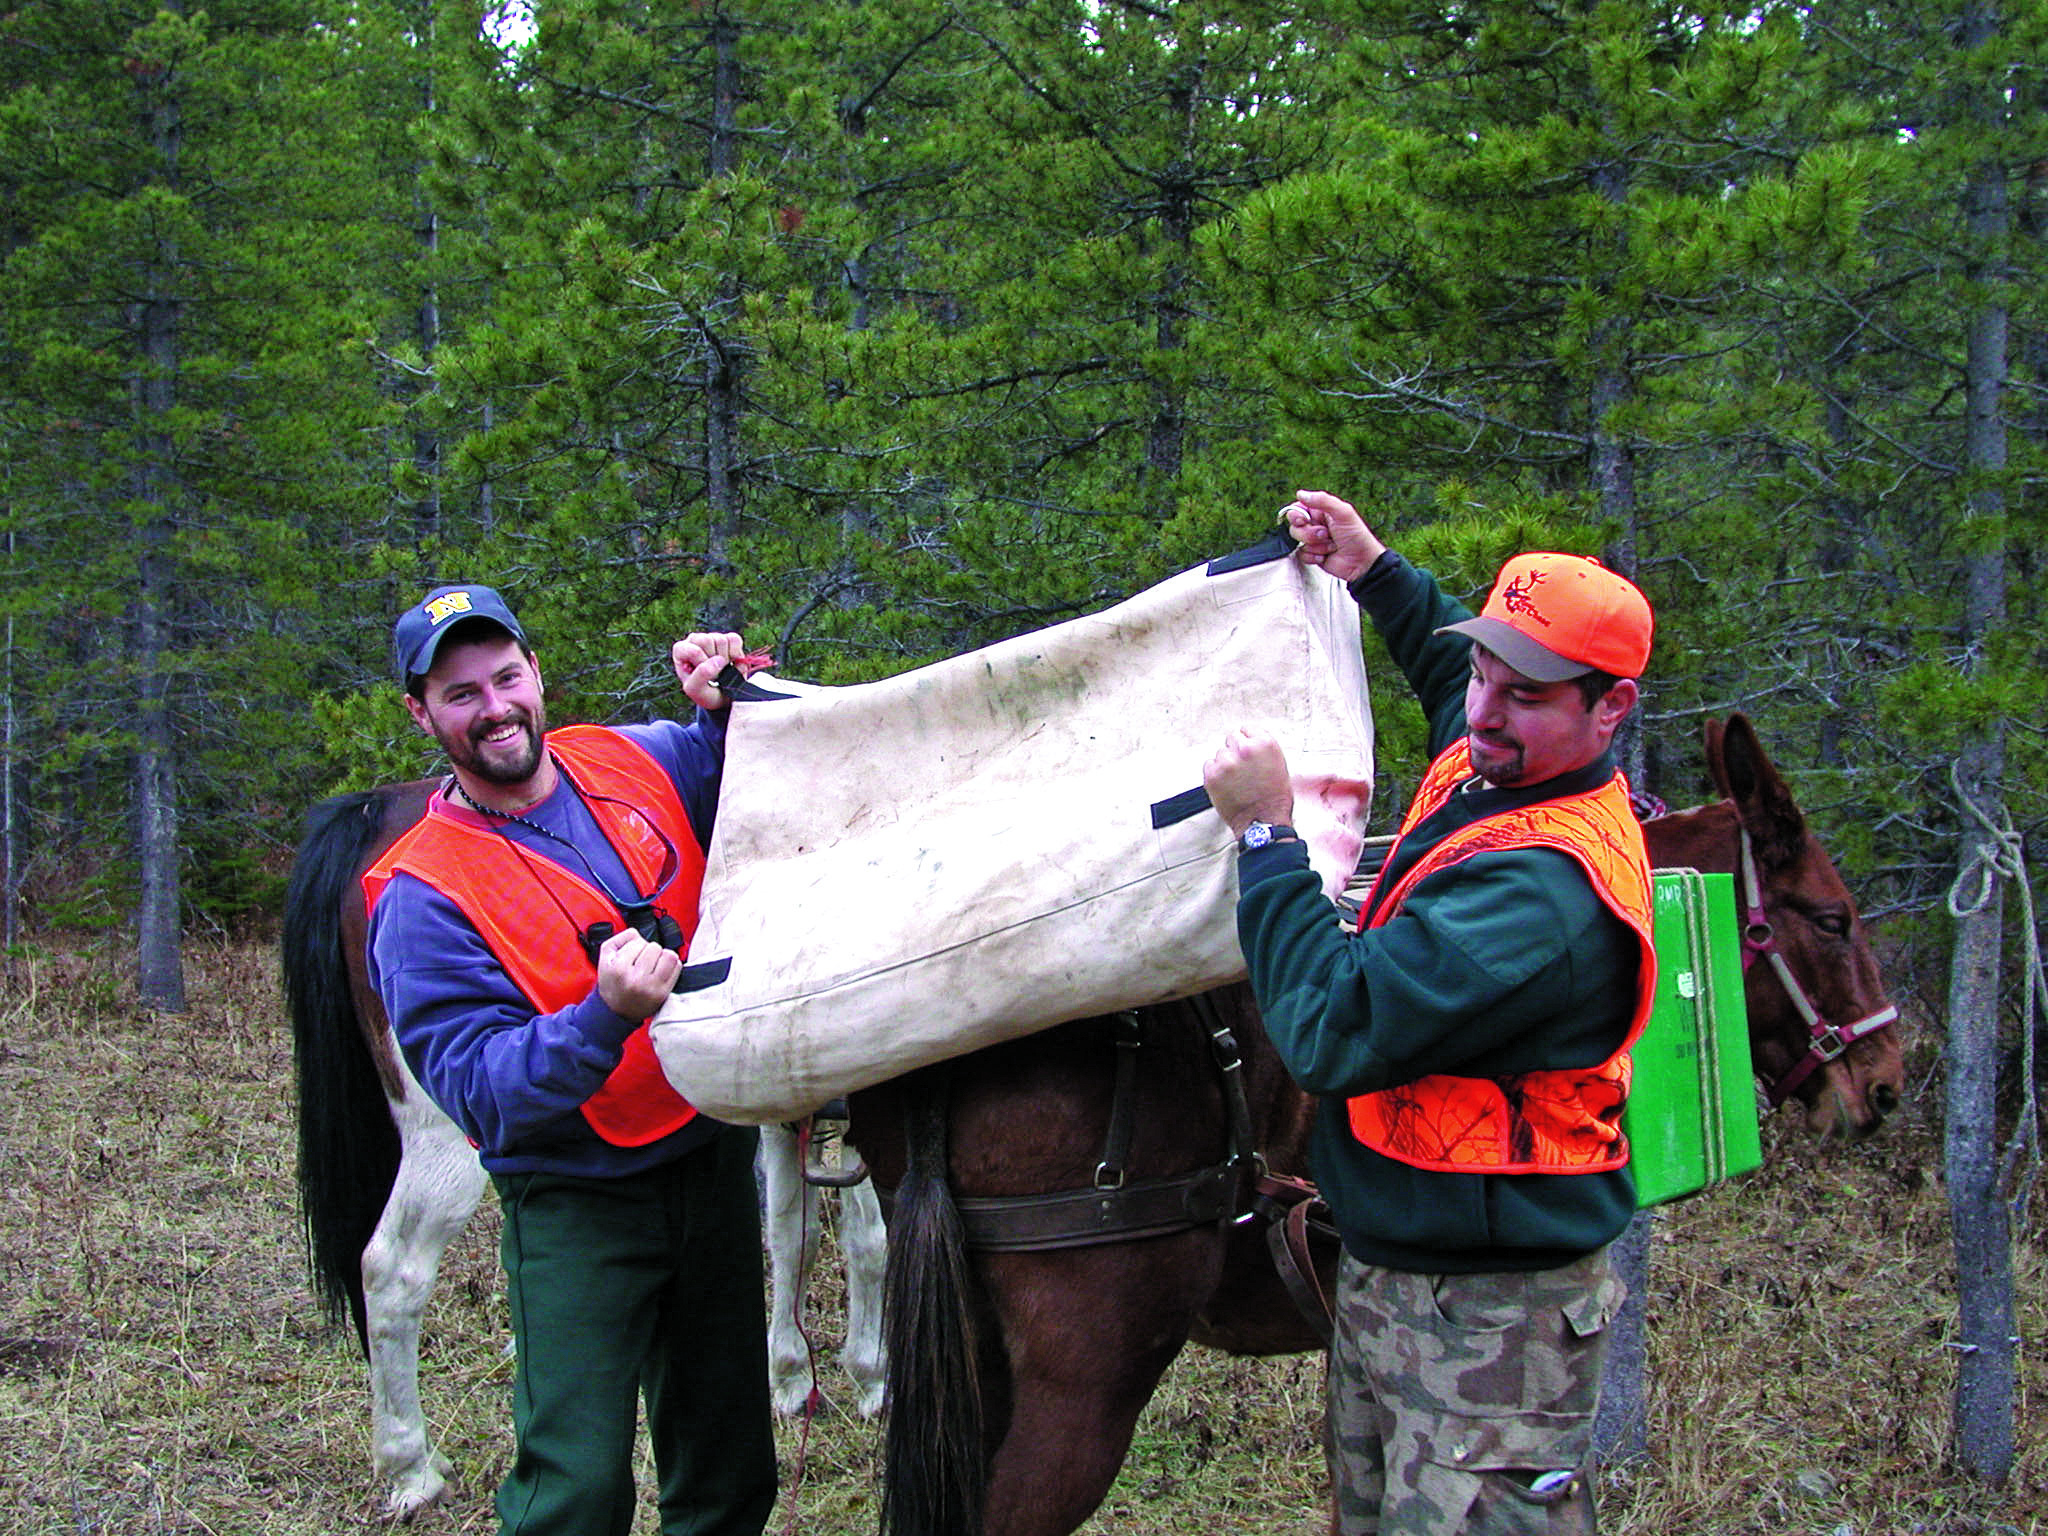 unloading the canvas wall tent off a horse